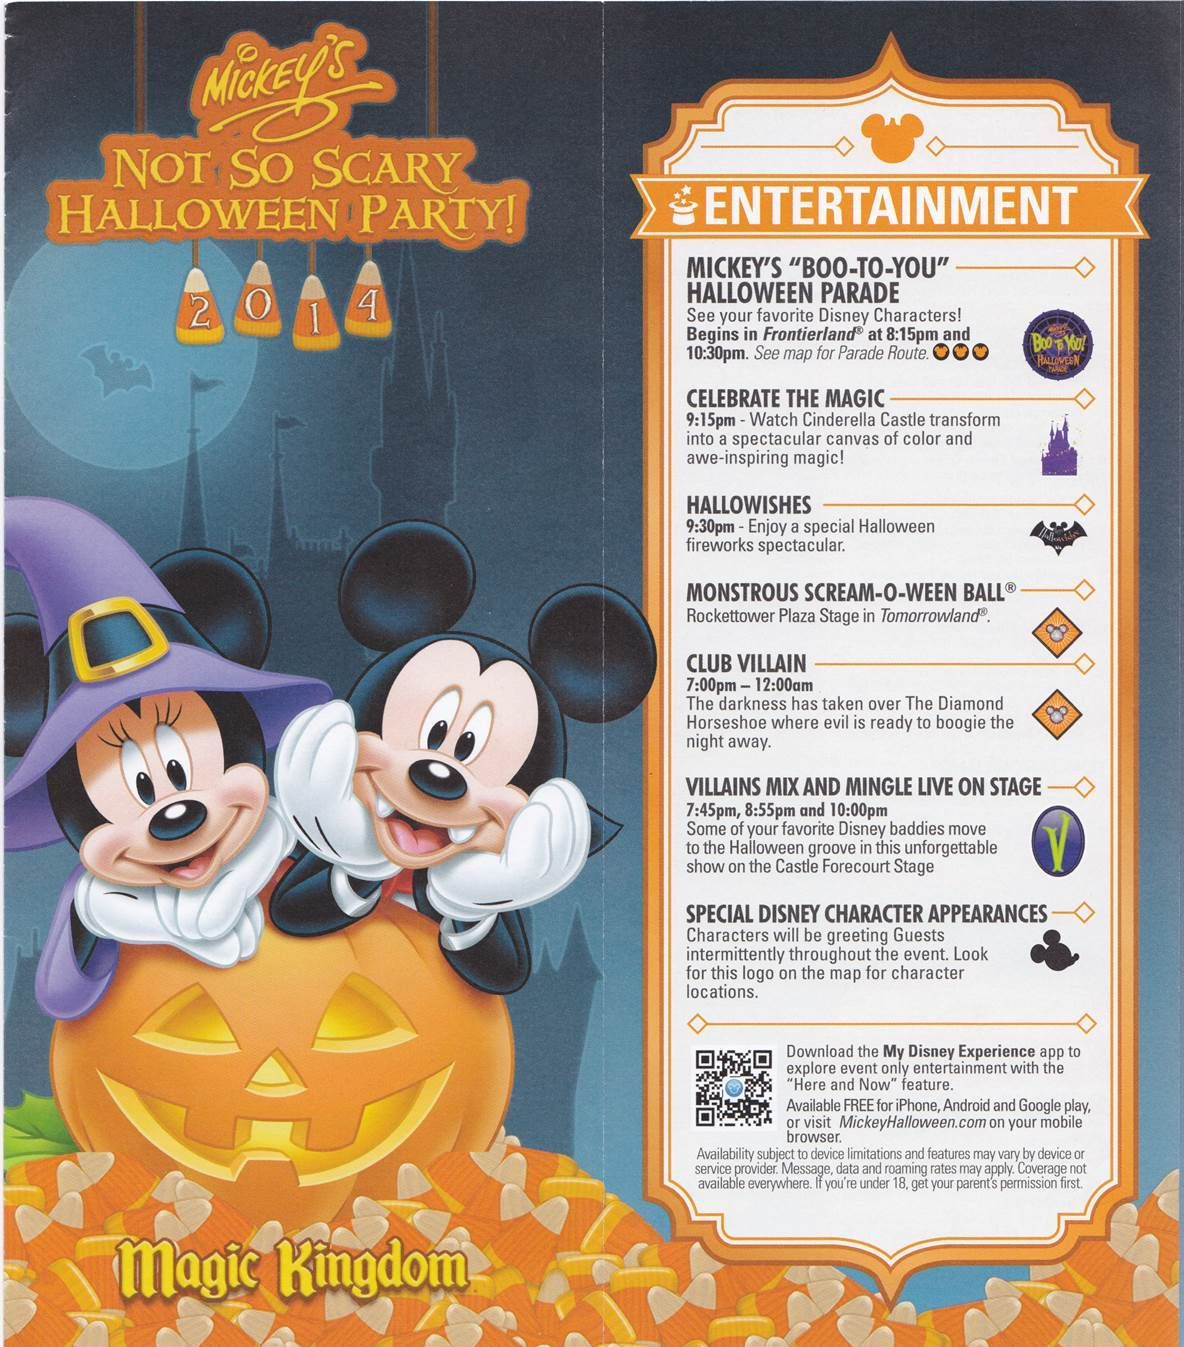 Review Of Disney World Mickeys Not So Scary Halloween Party